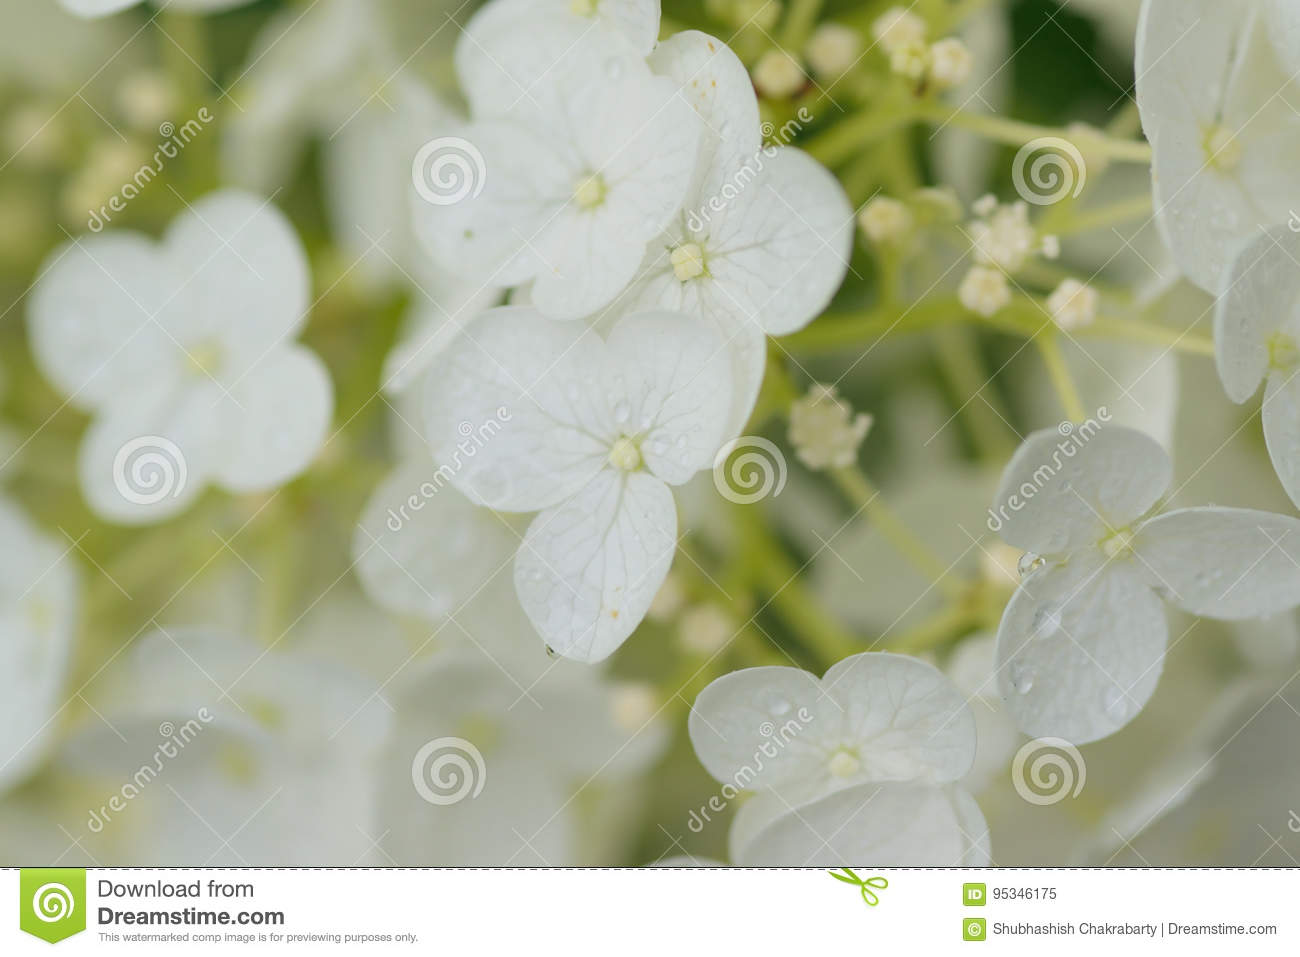 Macro Details Of White Colored Hydrangea Flowers With Water Droplets